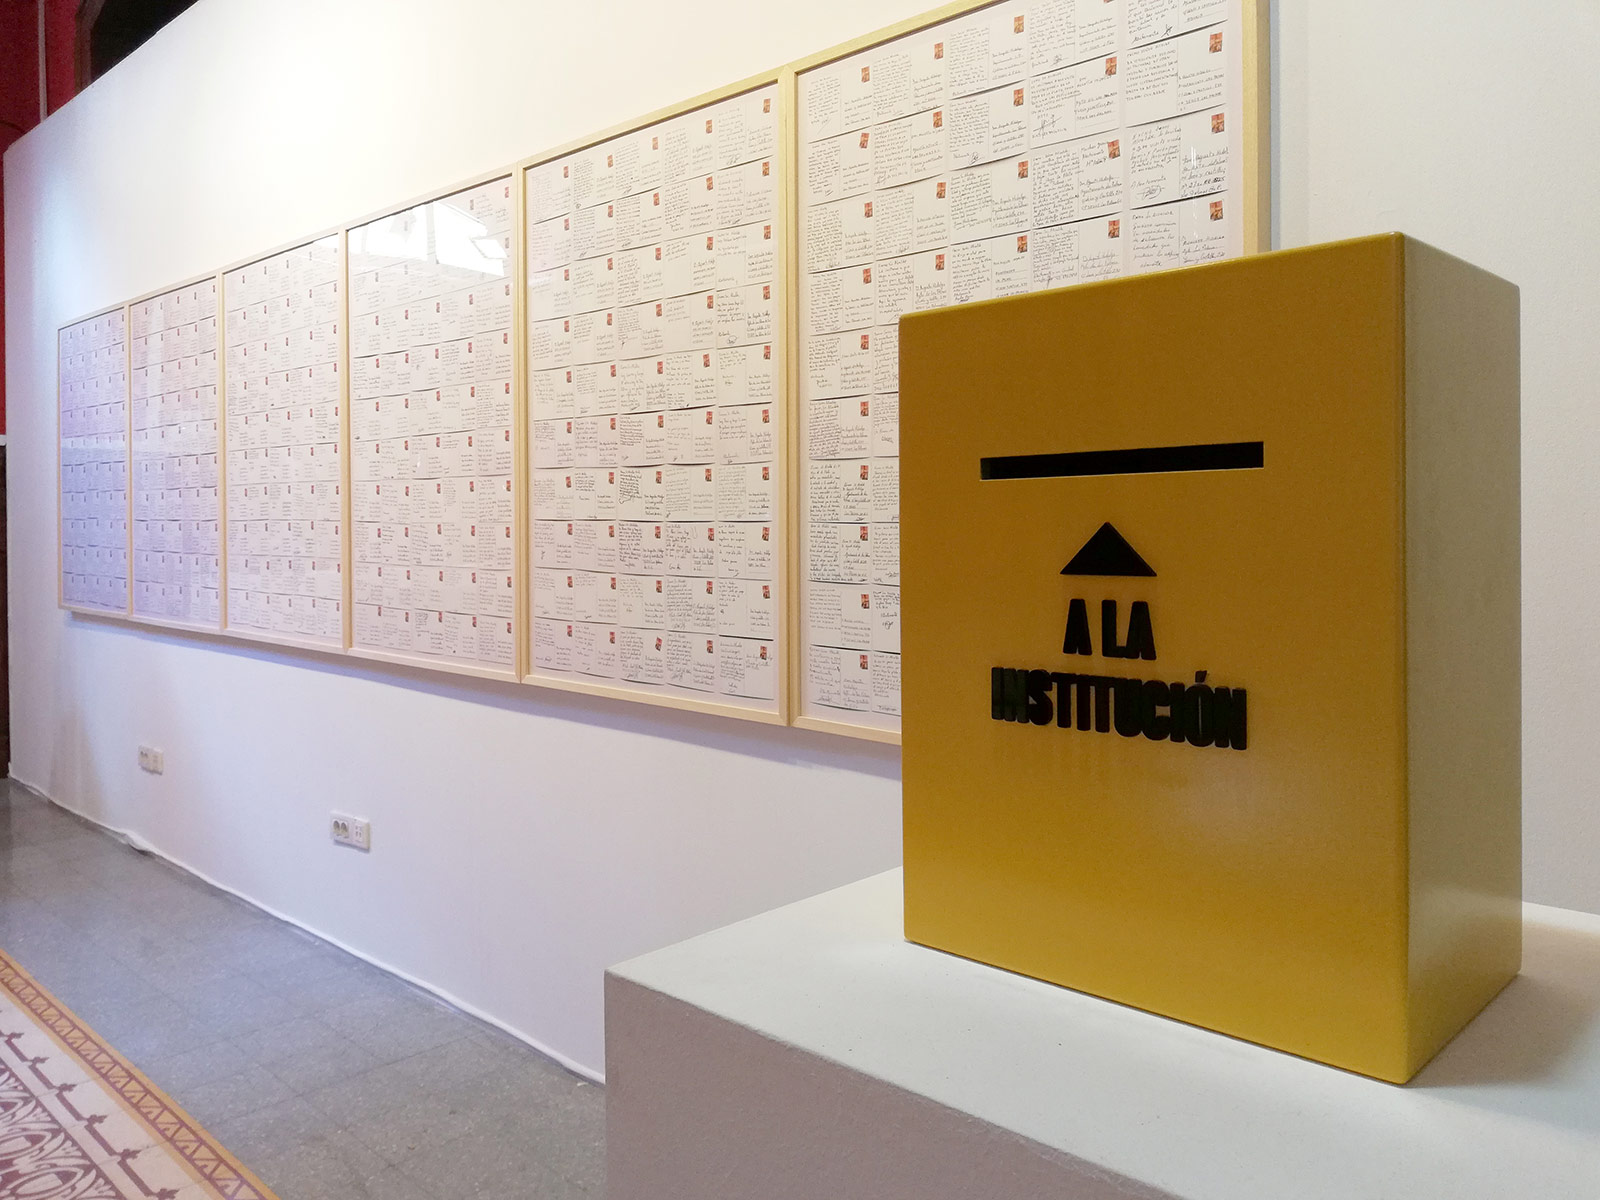 «To the institution», 2018, Mailbox, lacquered DM and methacrylate, 40 x 30 x 20 cm